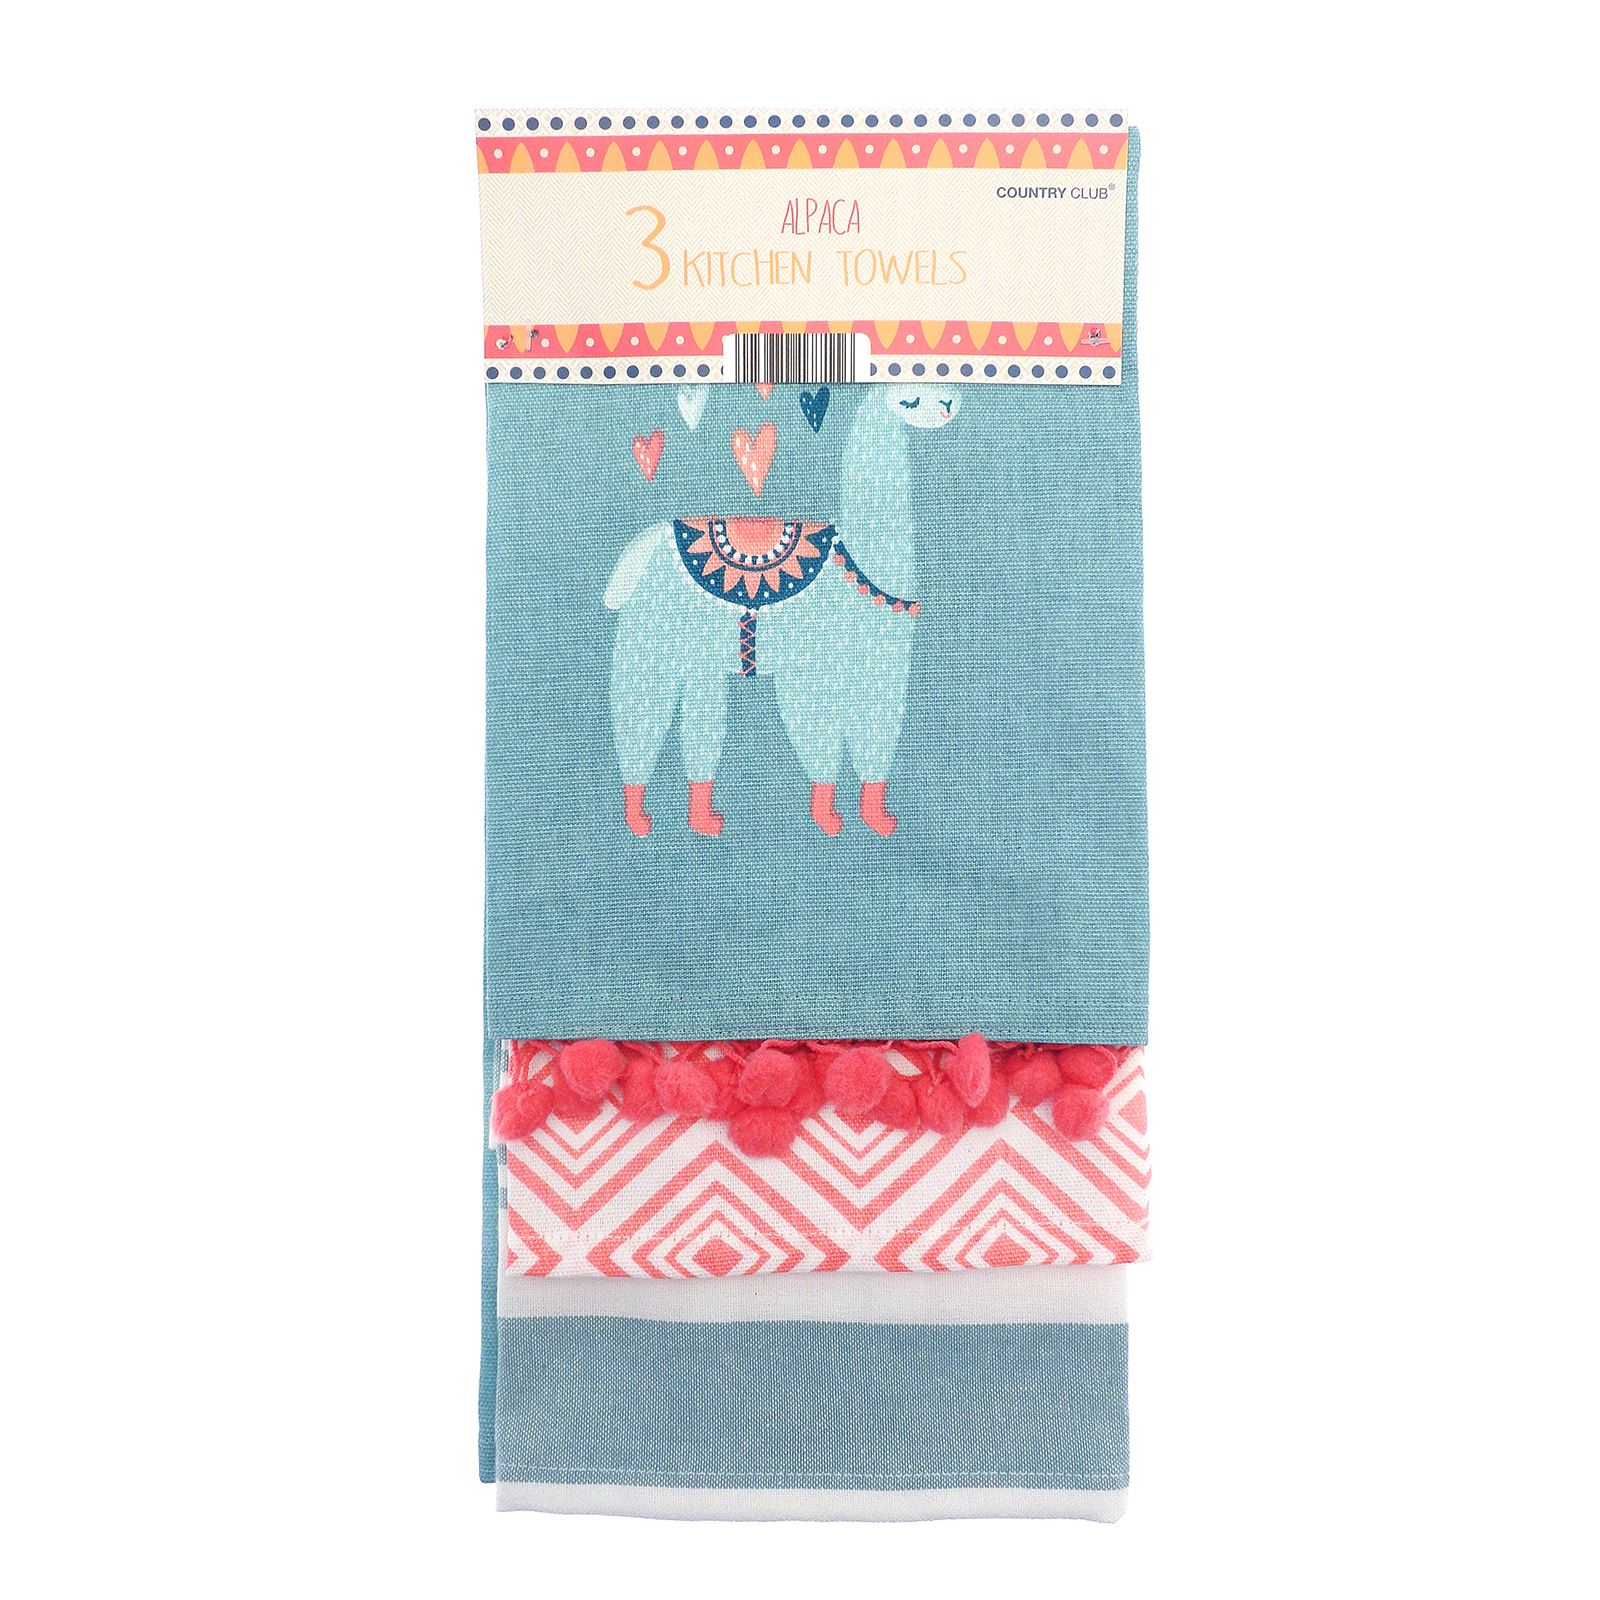 Details about 3 Pack of Alpaca Kitchen Tea Towels Home Cooking Oven  Cleaning Dishes Accessory